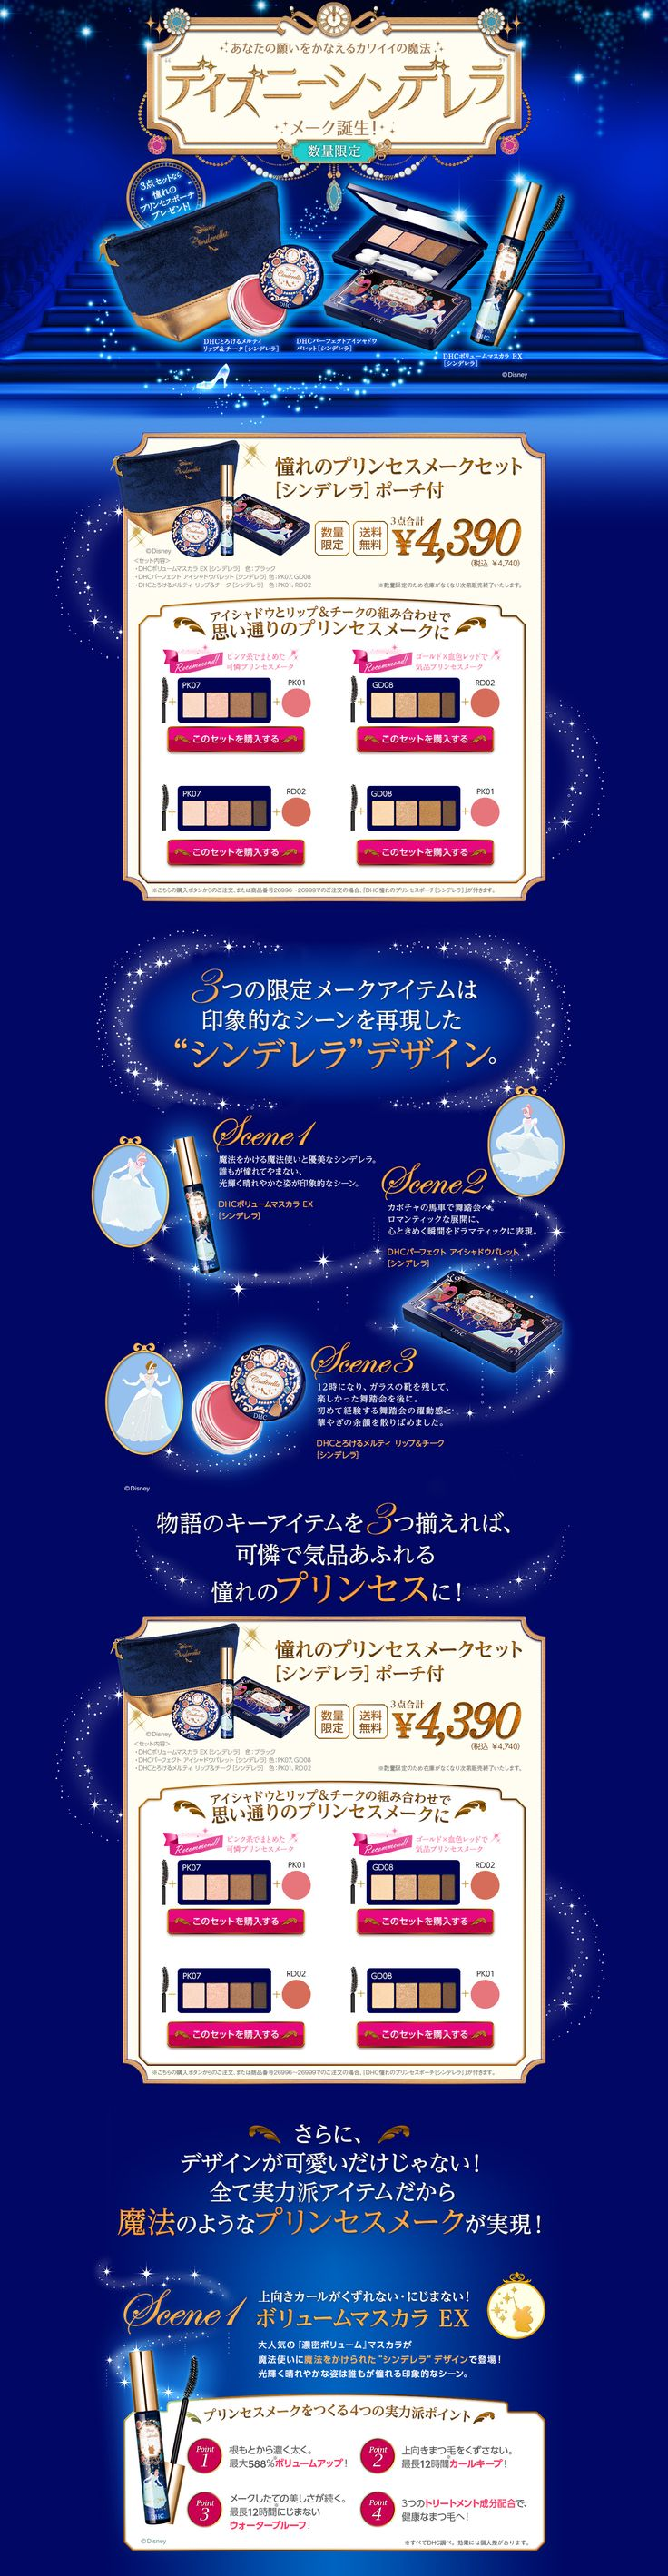 "http://top.dhc.co.jp/shop/ad/disney_all/index_se7_sdlfkh.html DHC cosme  ""ディズニーシンデレラ""メーク誕生!"